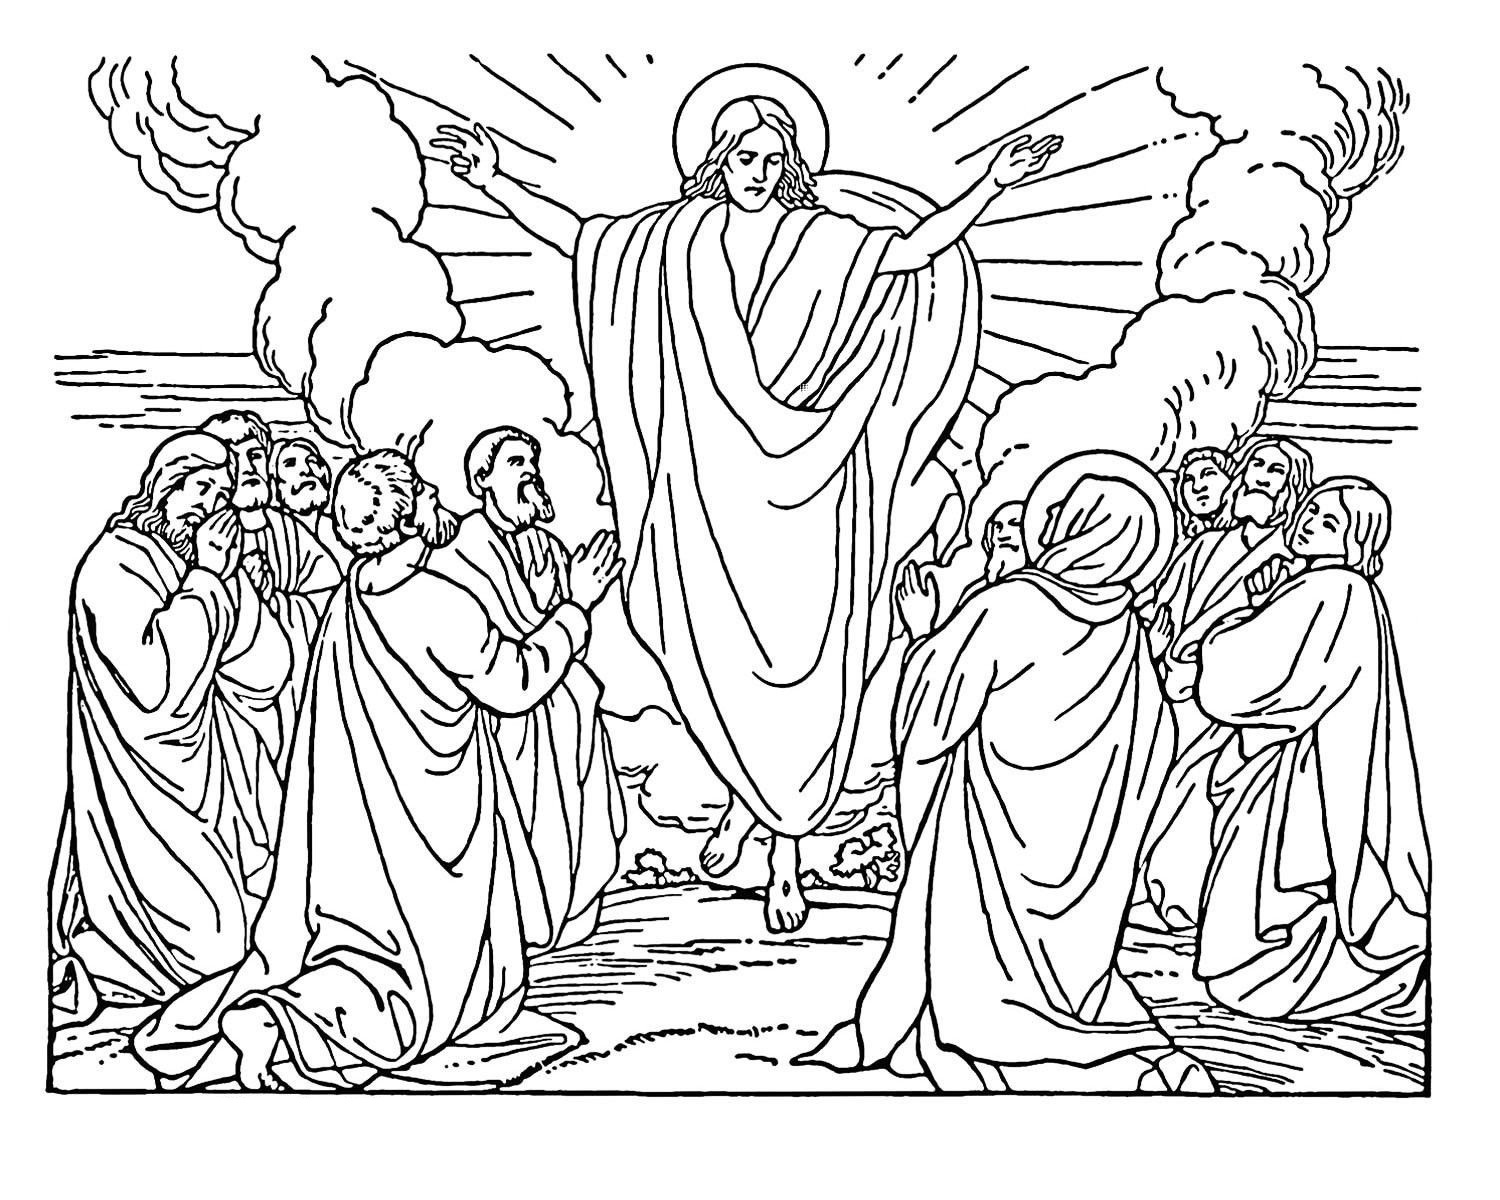 Free coloring pages bible - Bible Coloring Pages For Children